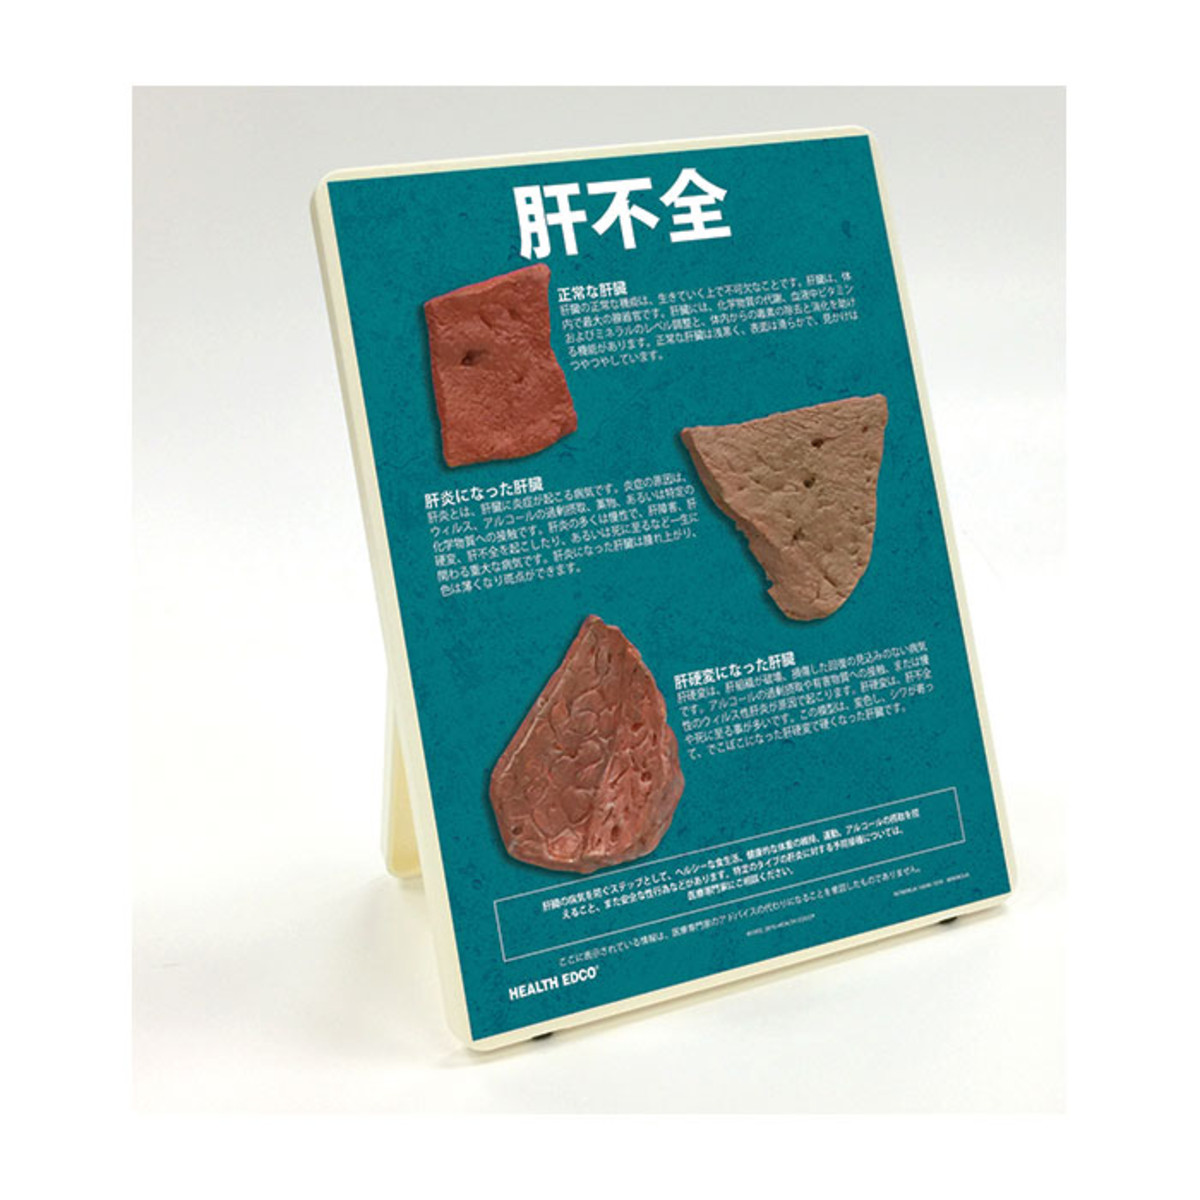 Health Edco; Japanese; health education products; liver disease; hepatitis; cirrhotic liver; alcohol abuse